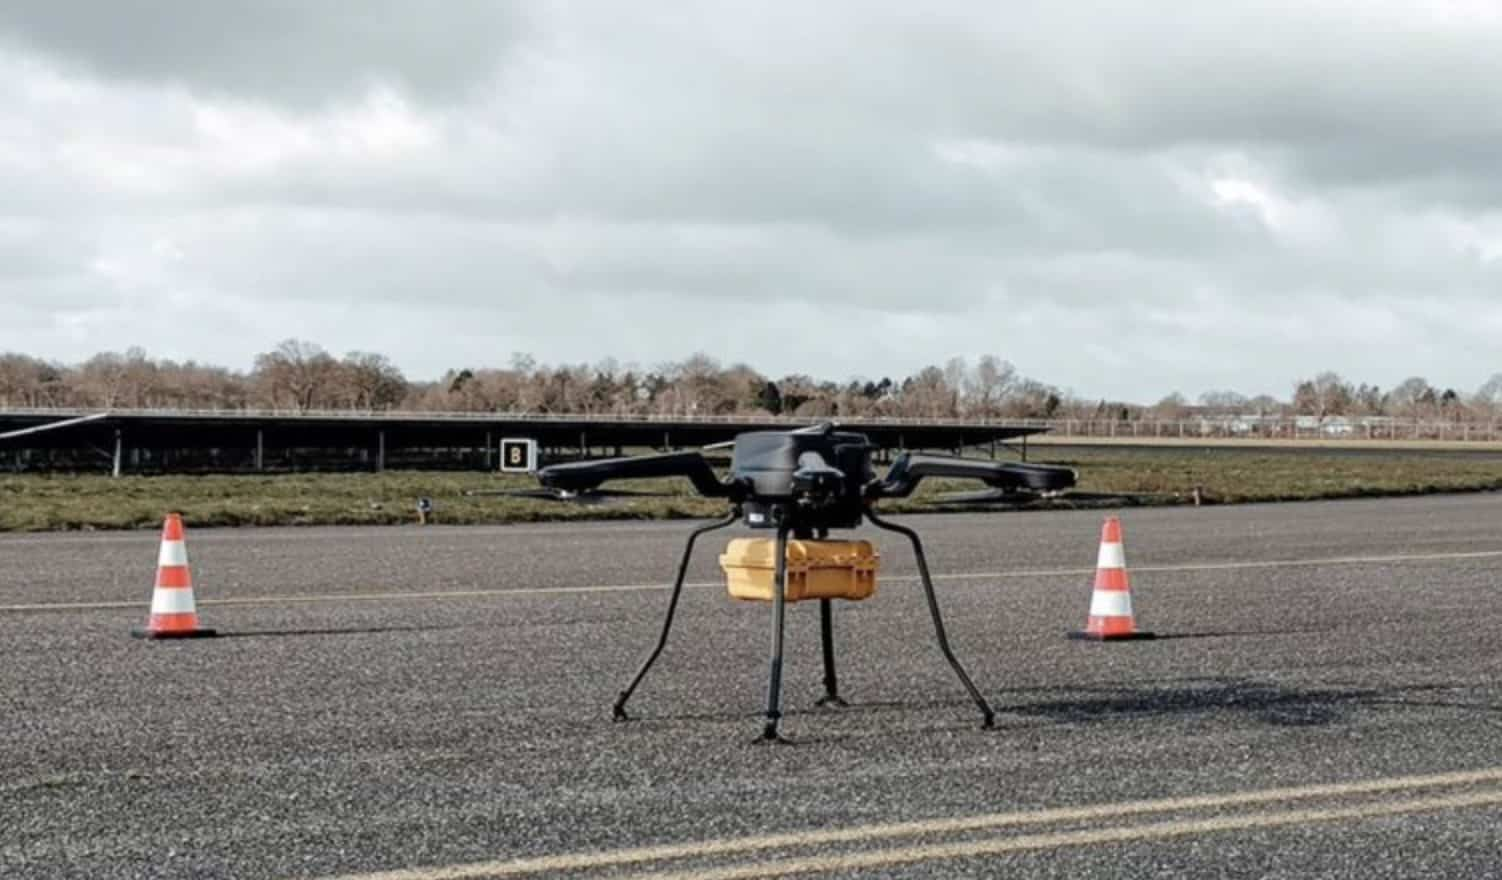 First BVLOS drone flight from Dutch airport has occurred